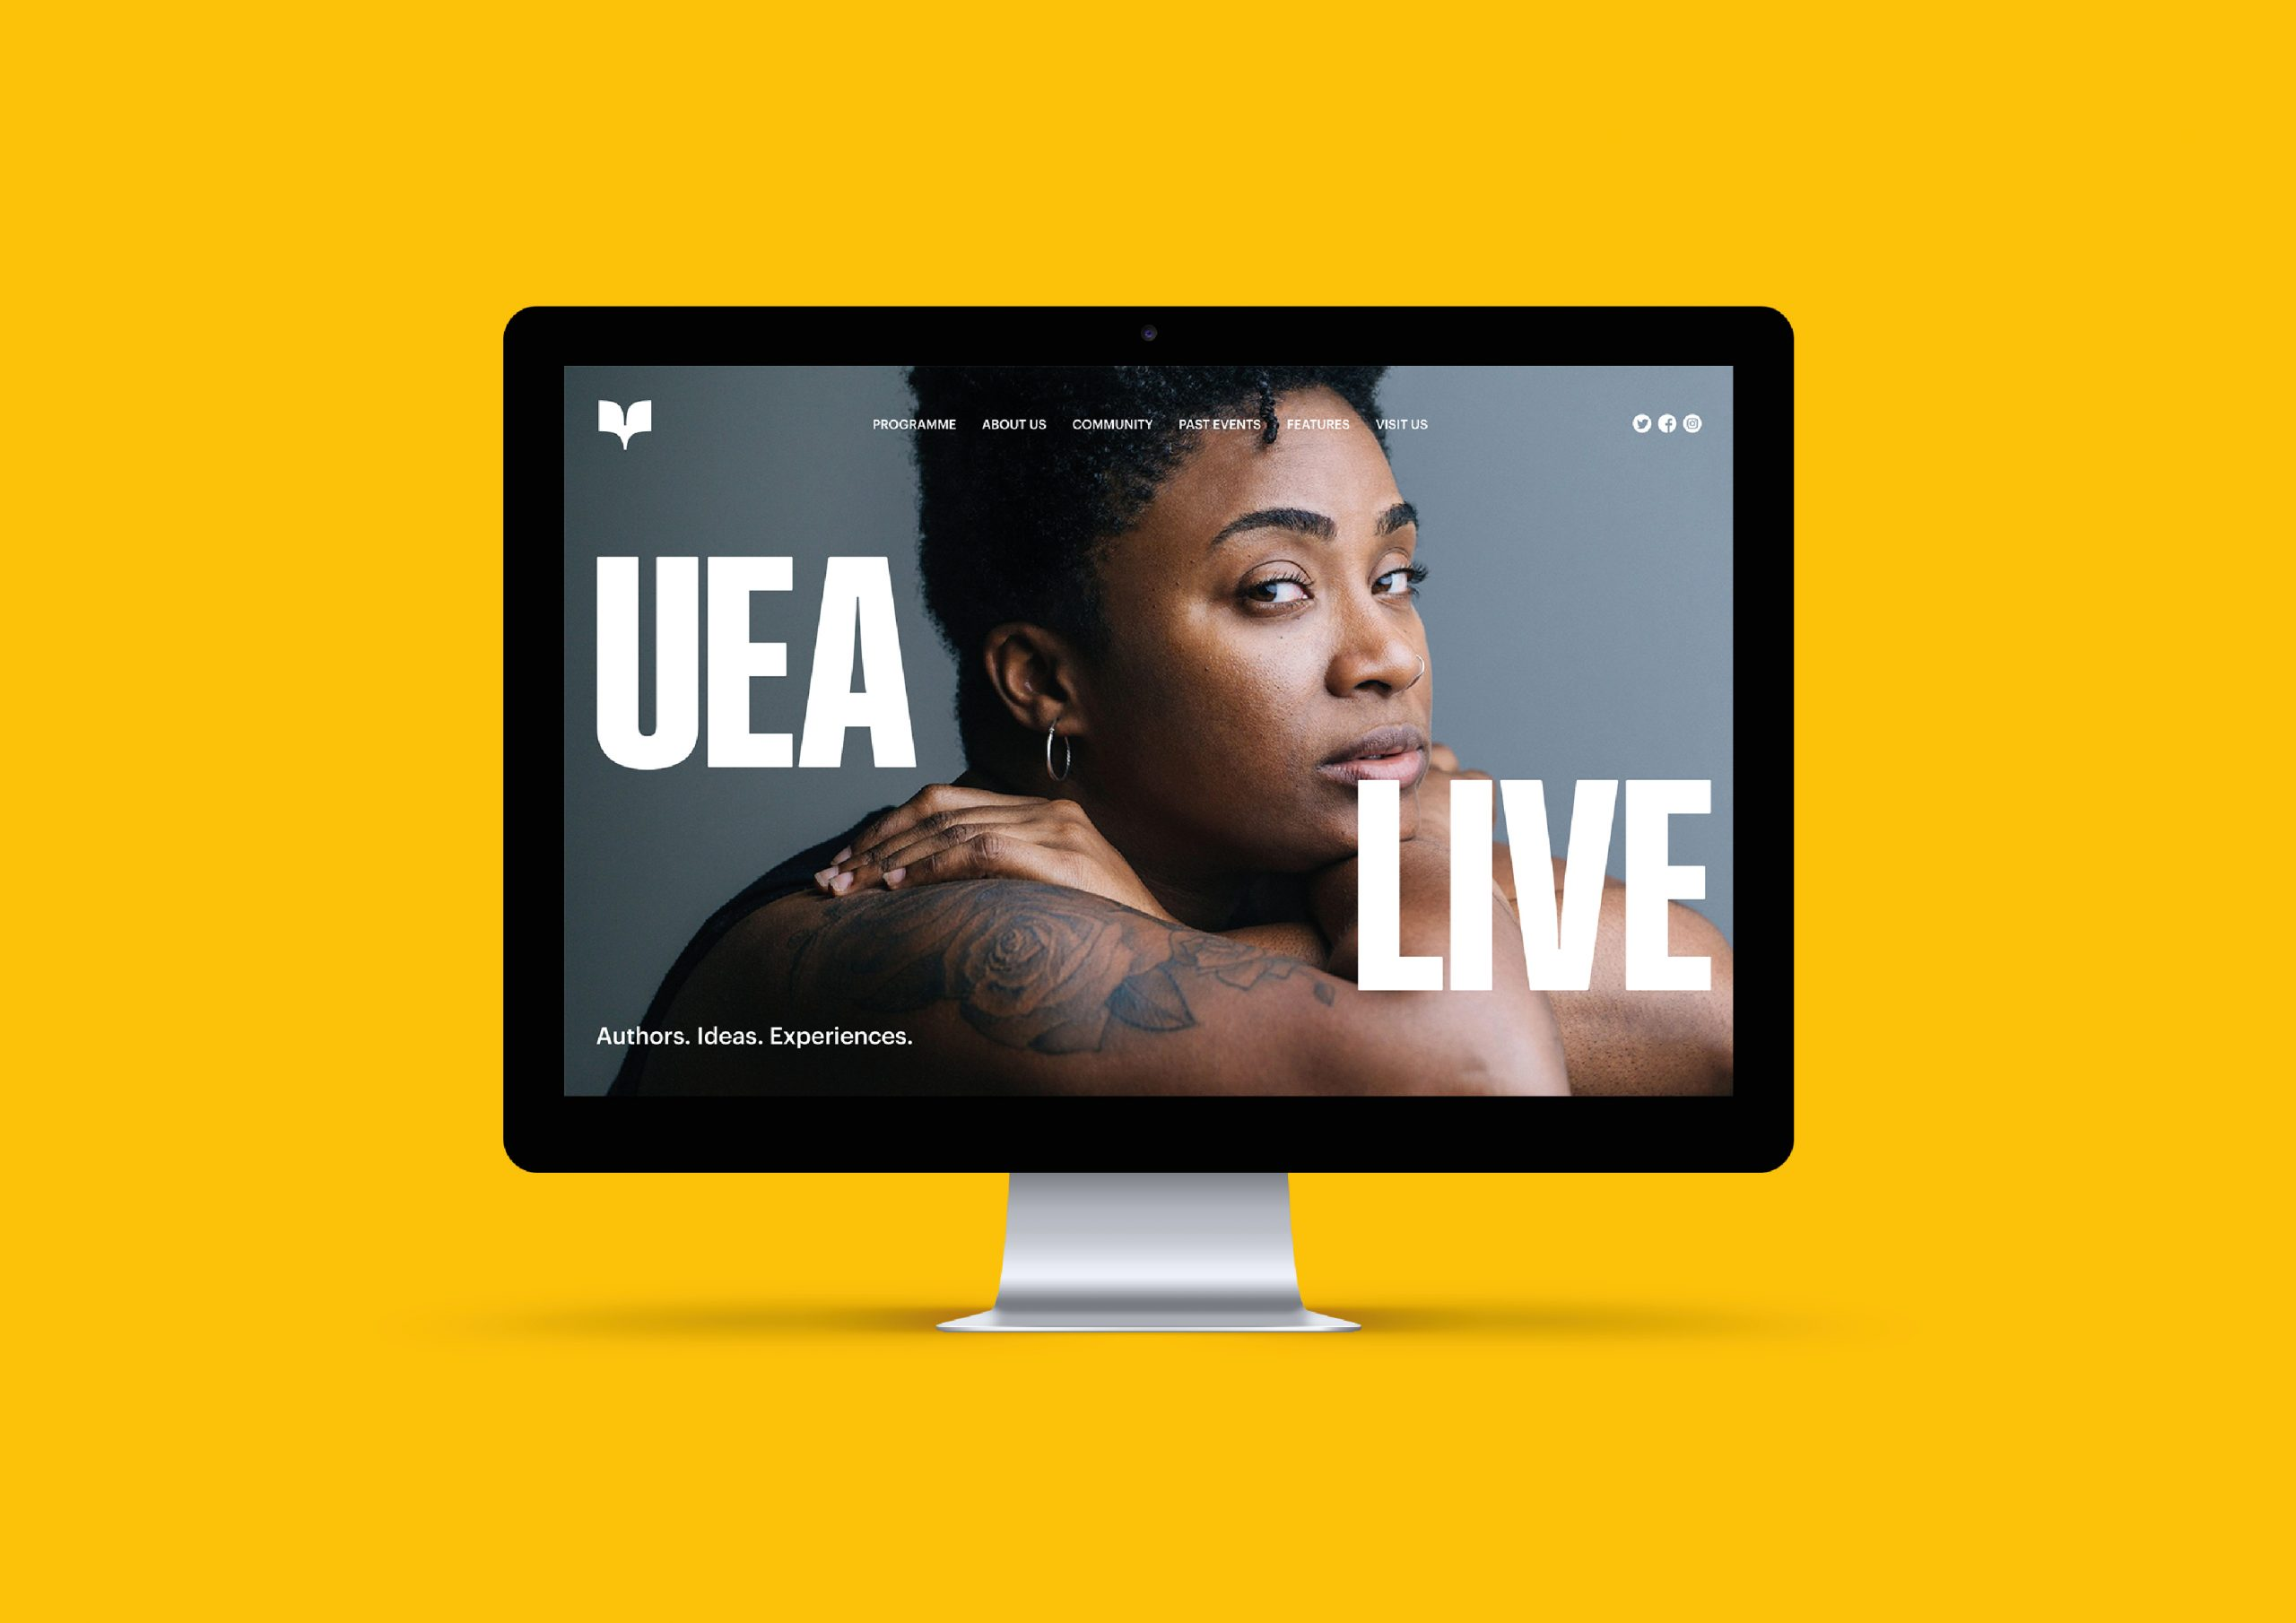 UEA Live website design